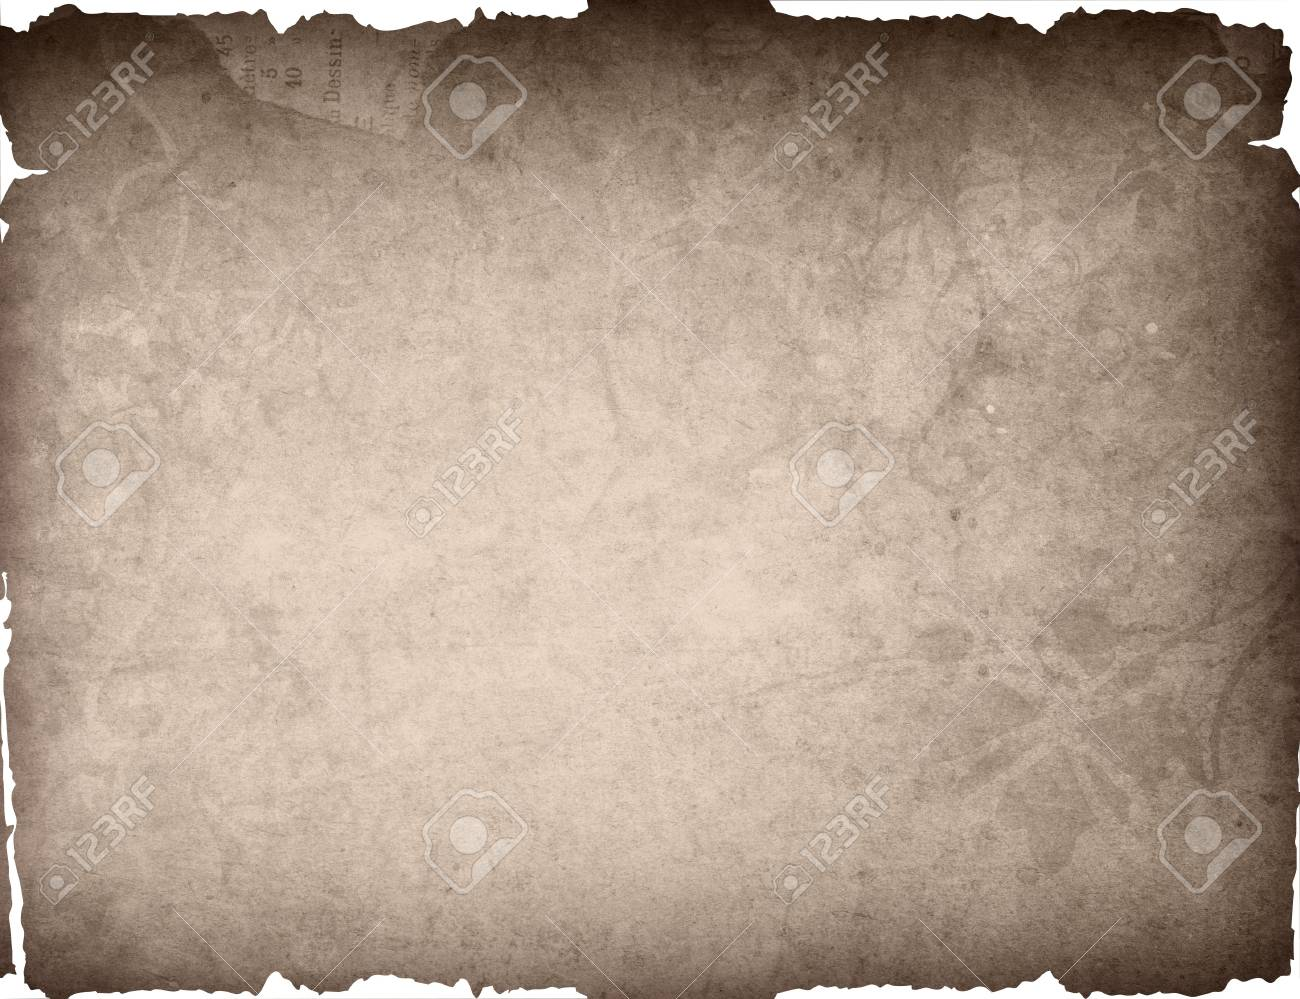 highly Detailed grunge background frame-with space for your design Stock Photo - 6941926